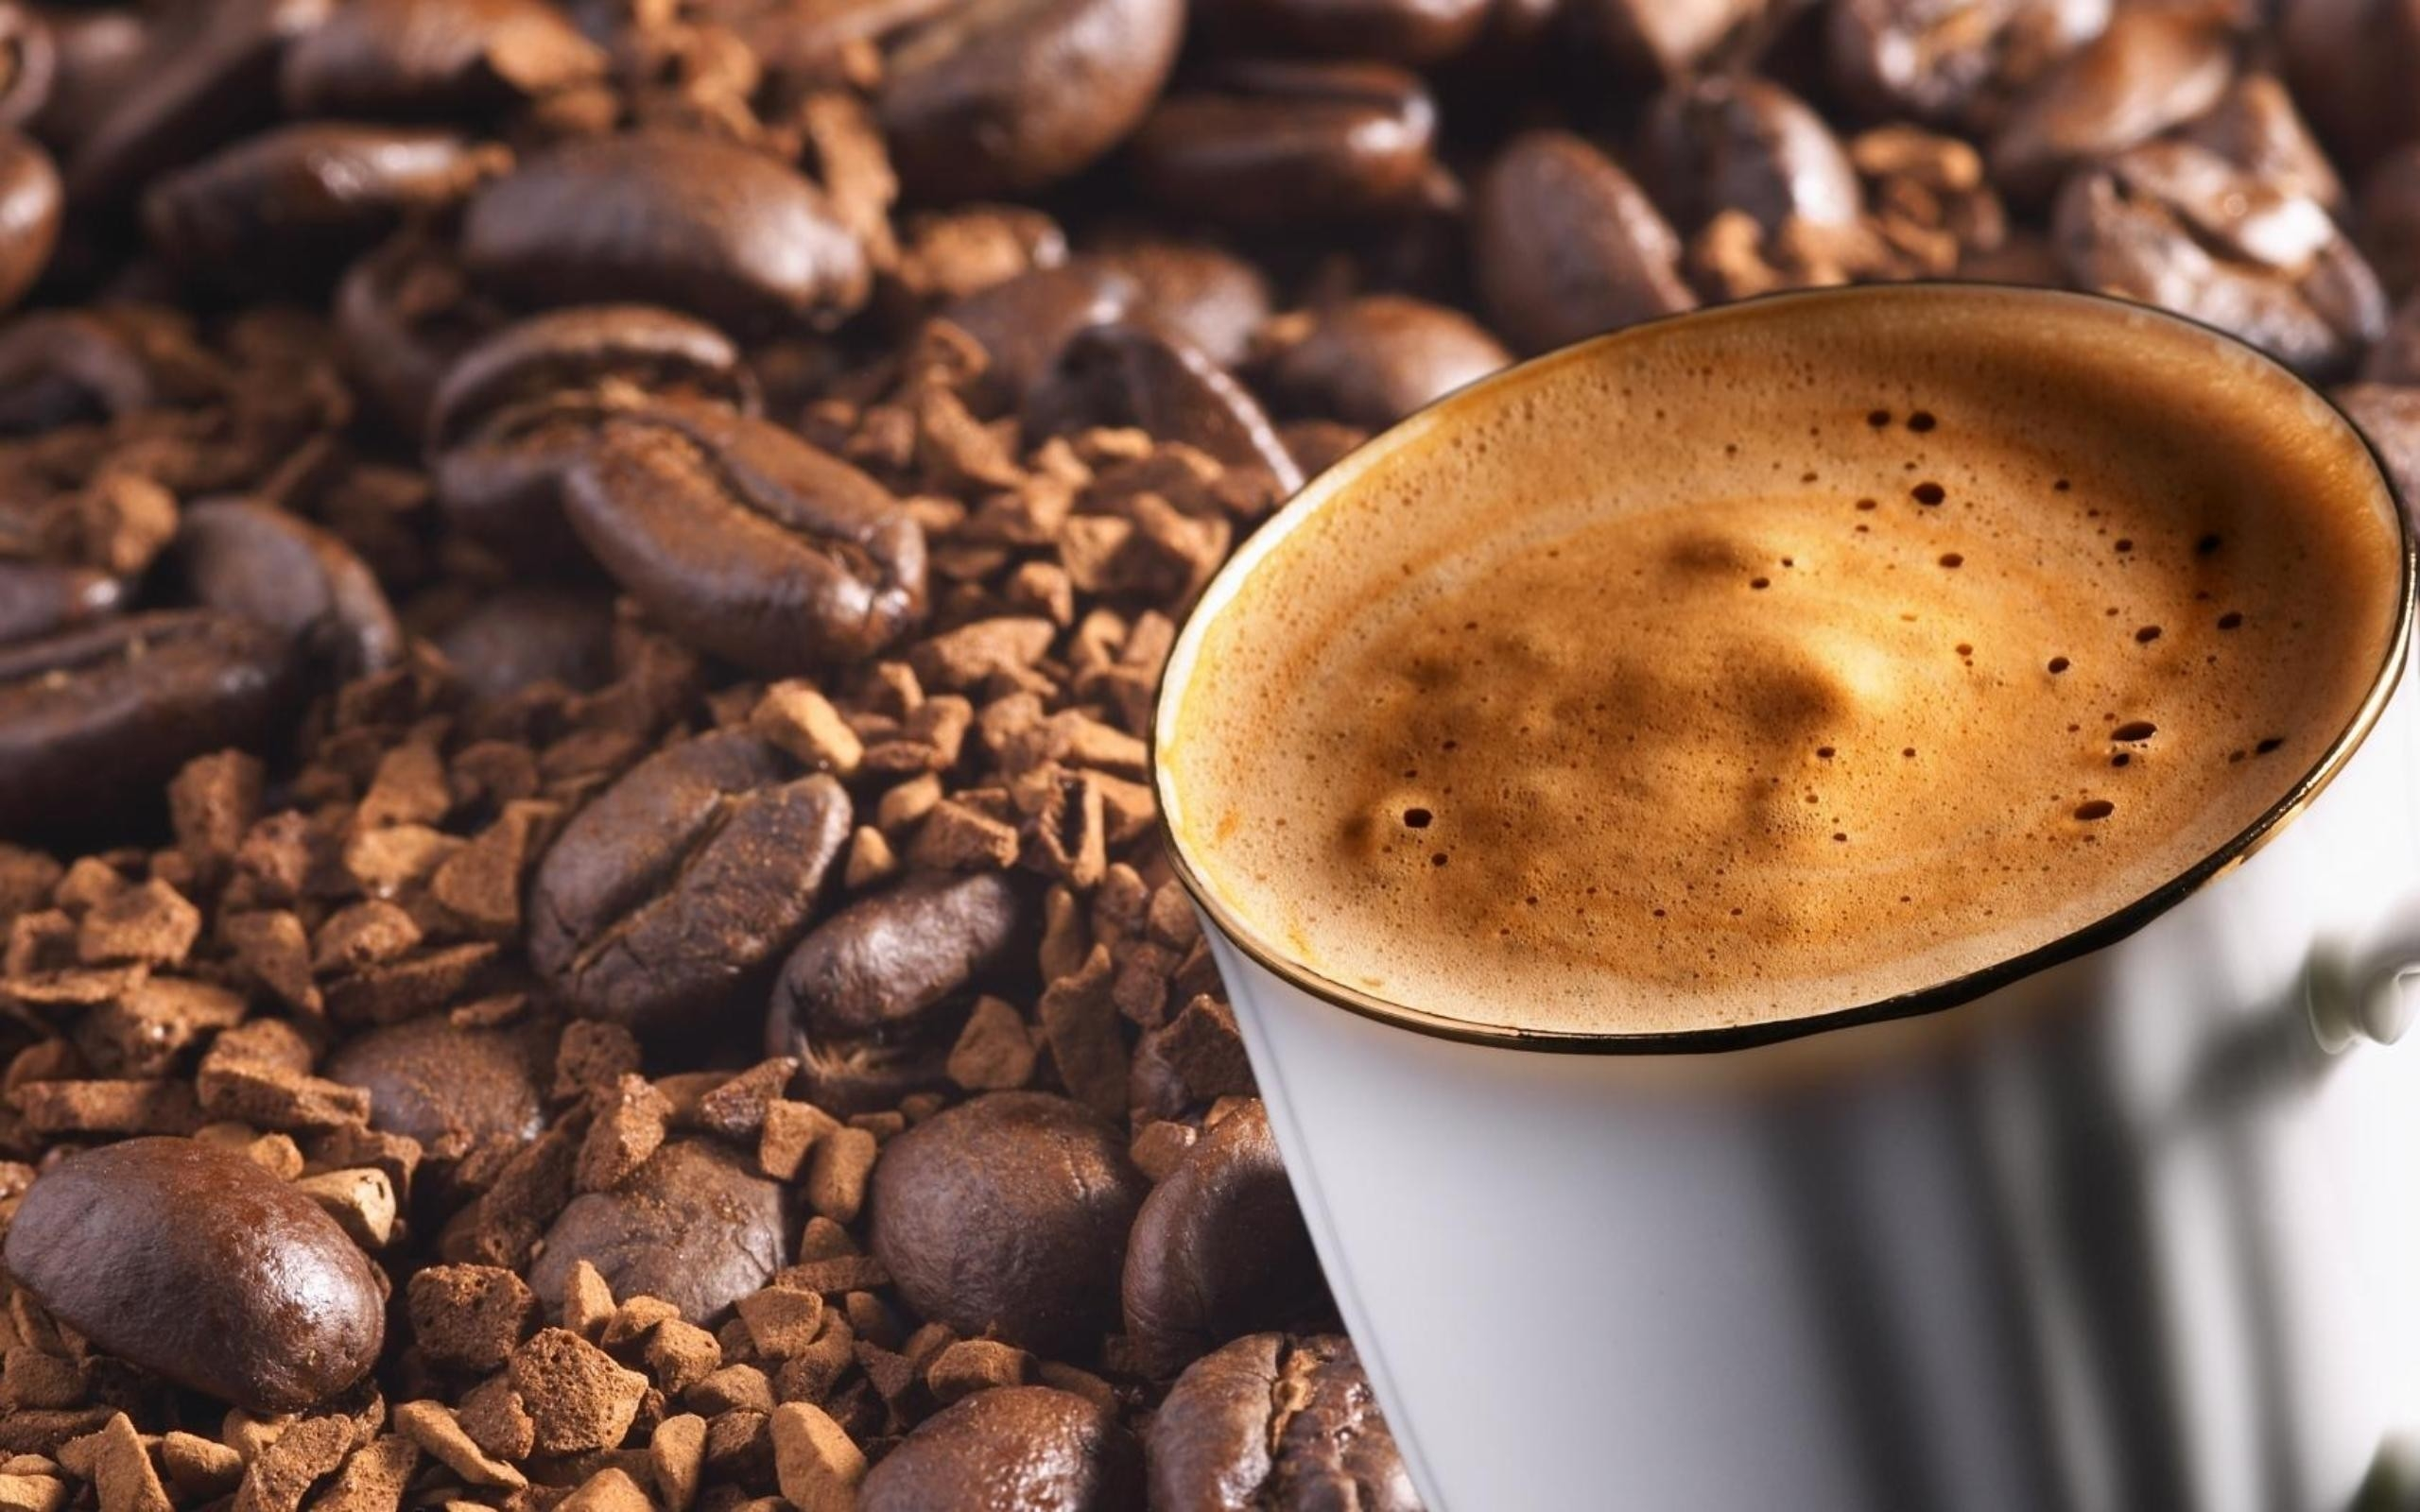 1279 Coffee Hd Wallpapers Background Images Wallpaper Abyss